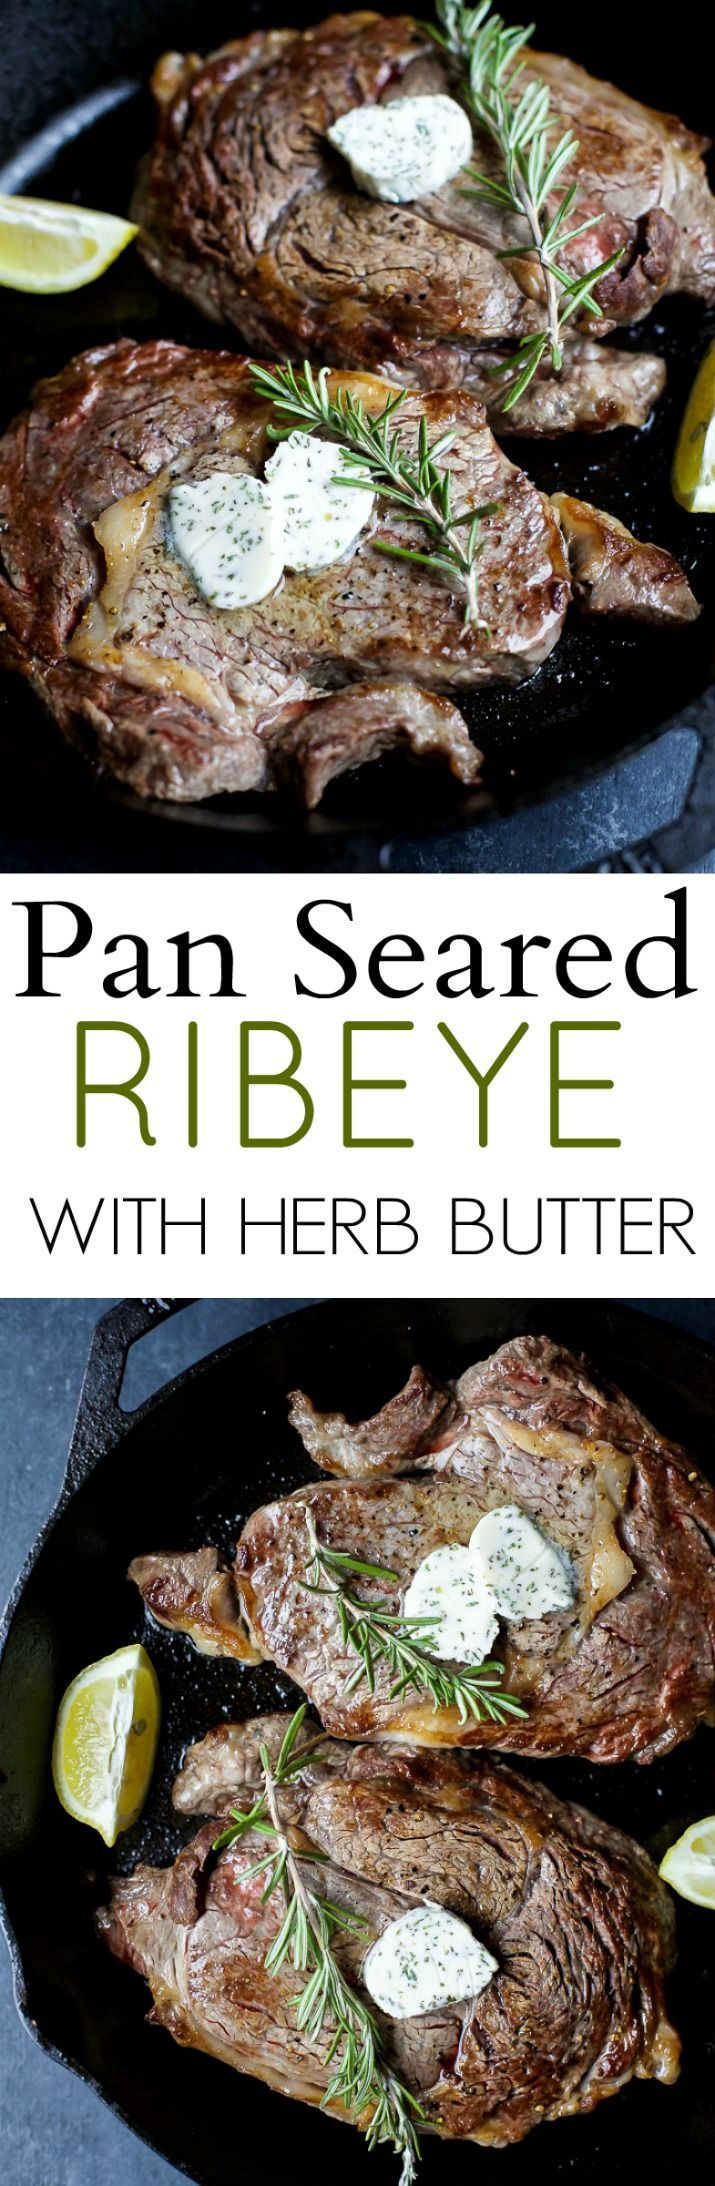 The perfect steak in just 15 minutes! Pan Seared Ribeye that's finished off in the oven and topped with homemade Herb Butter that will make you swoon! | http://joyfulhealthyeats.com #glutenfree